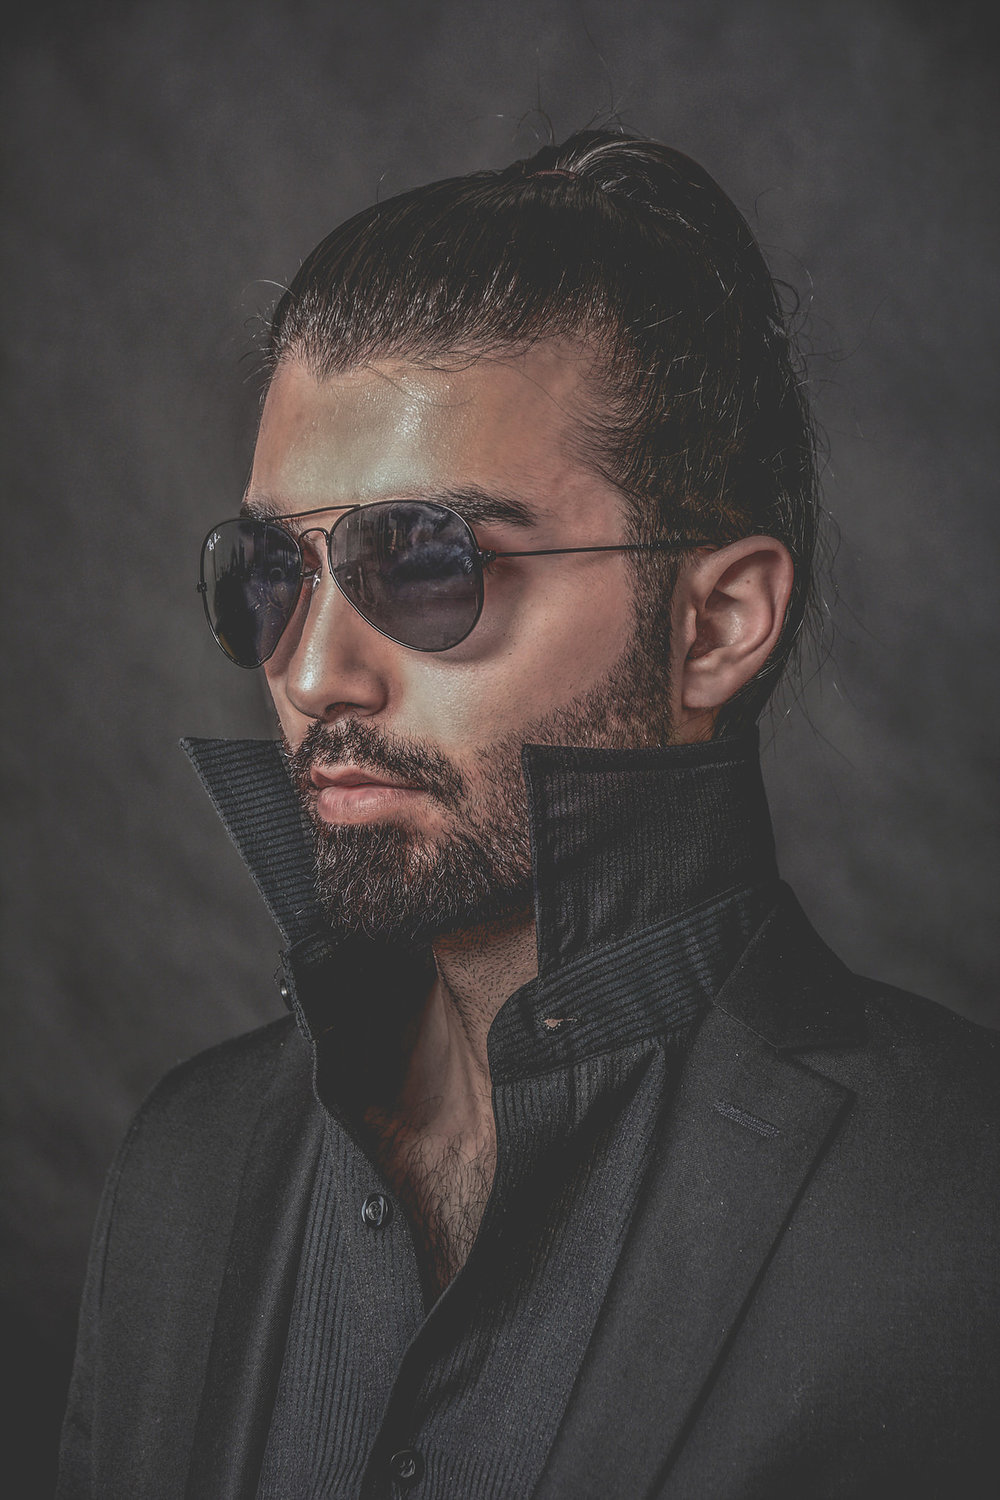 Amine Sarieddine, Model Citizen Magazine, Model Citizen App, Model Citizen Media, Urfolios